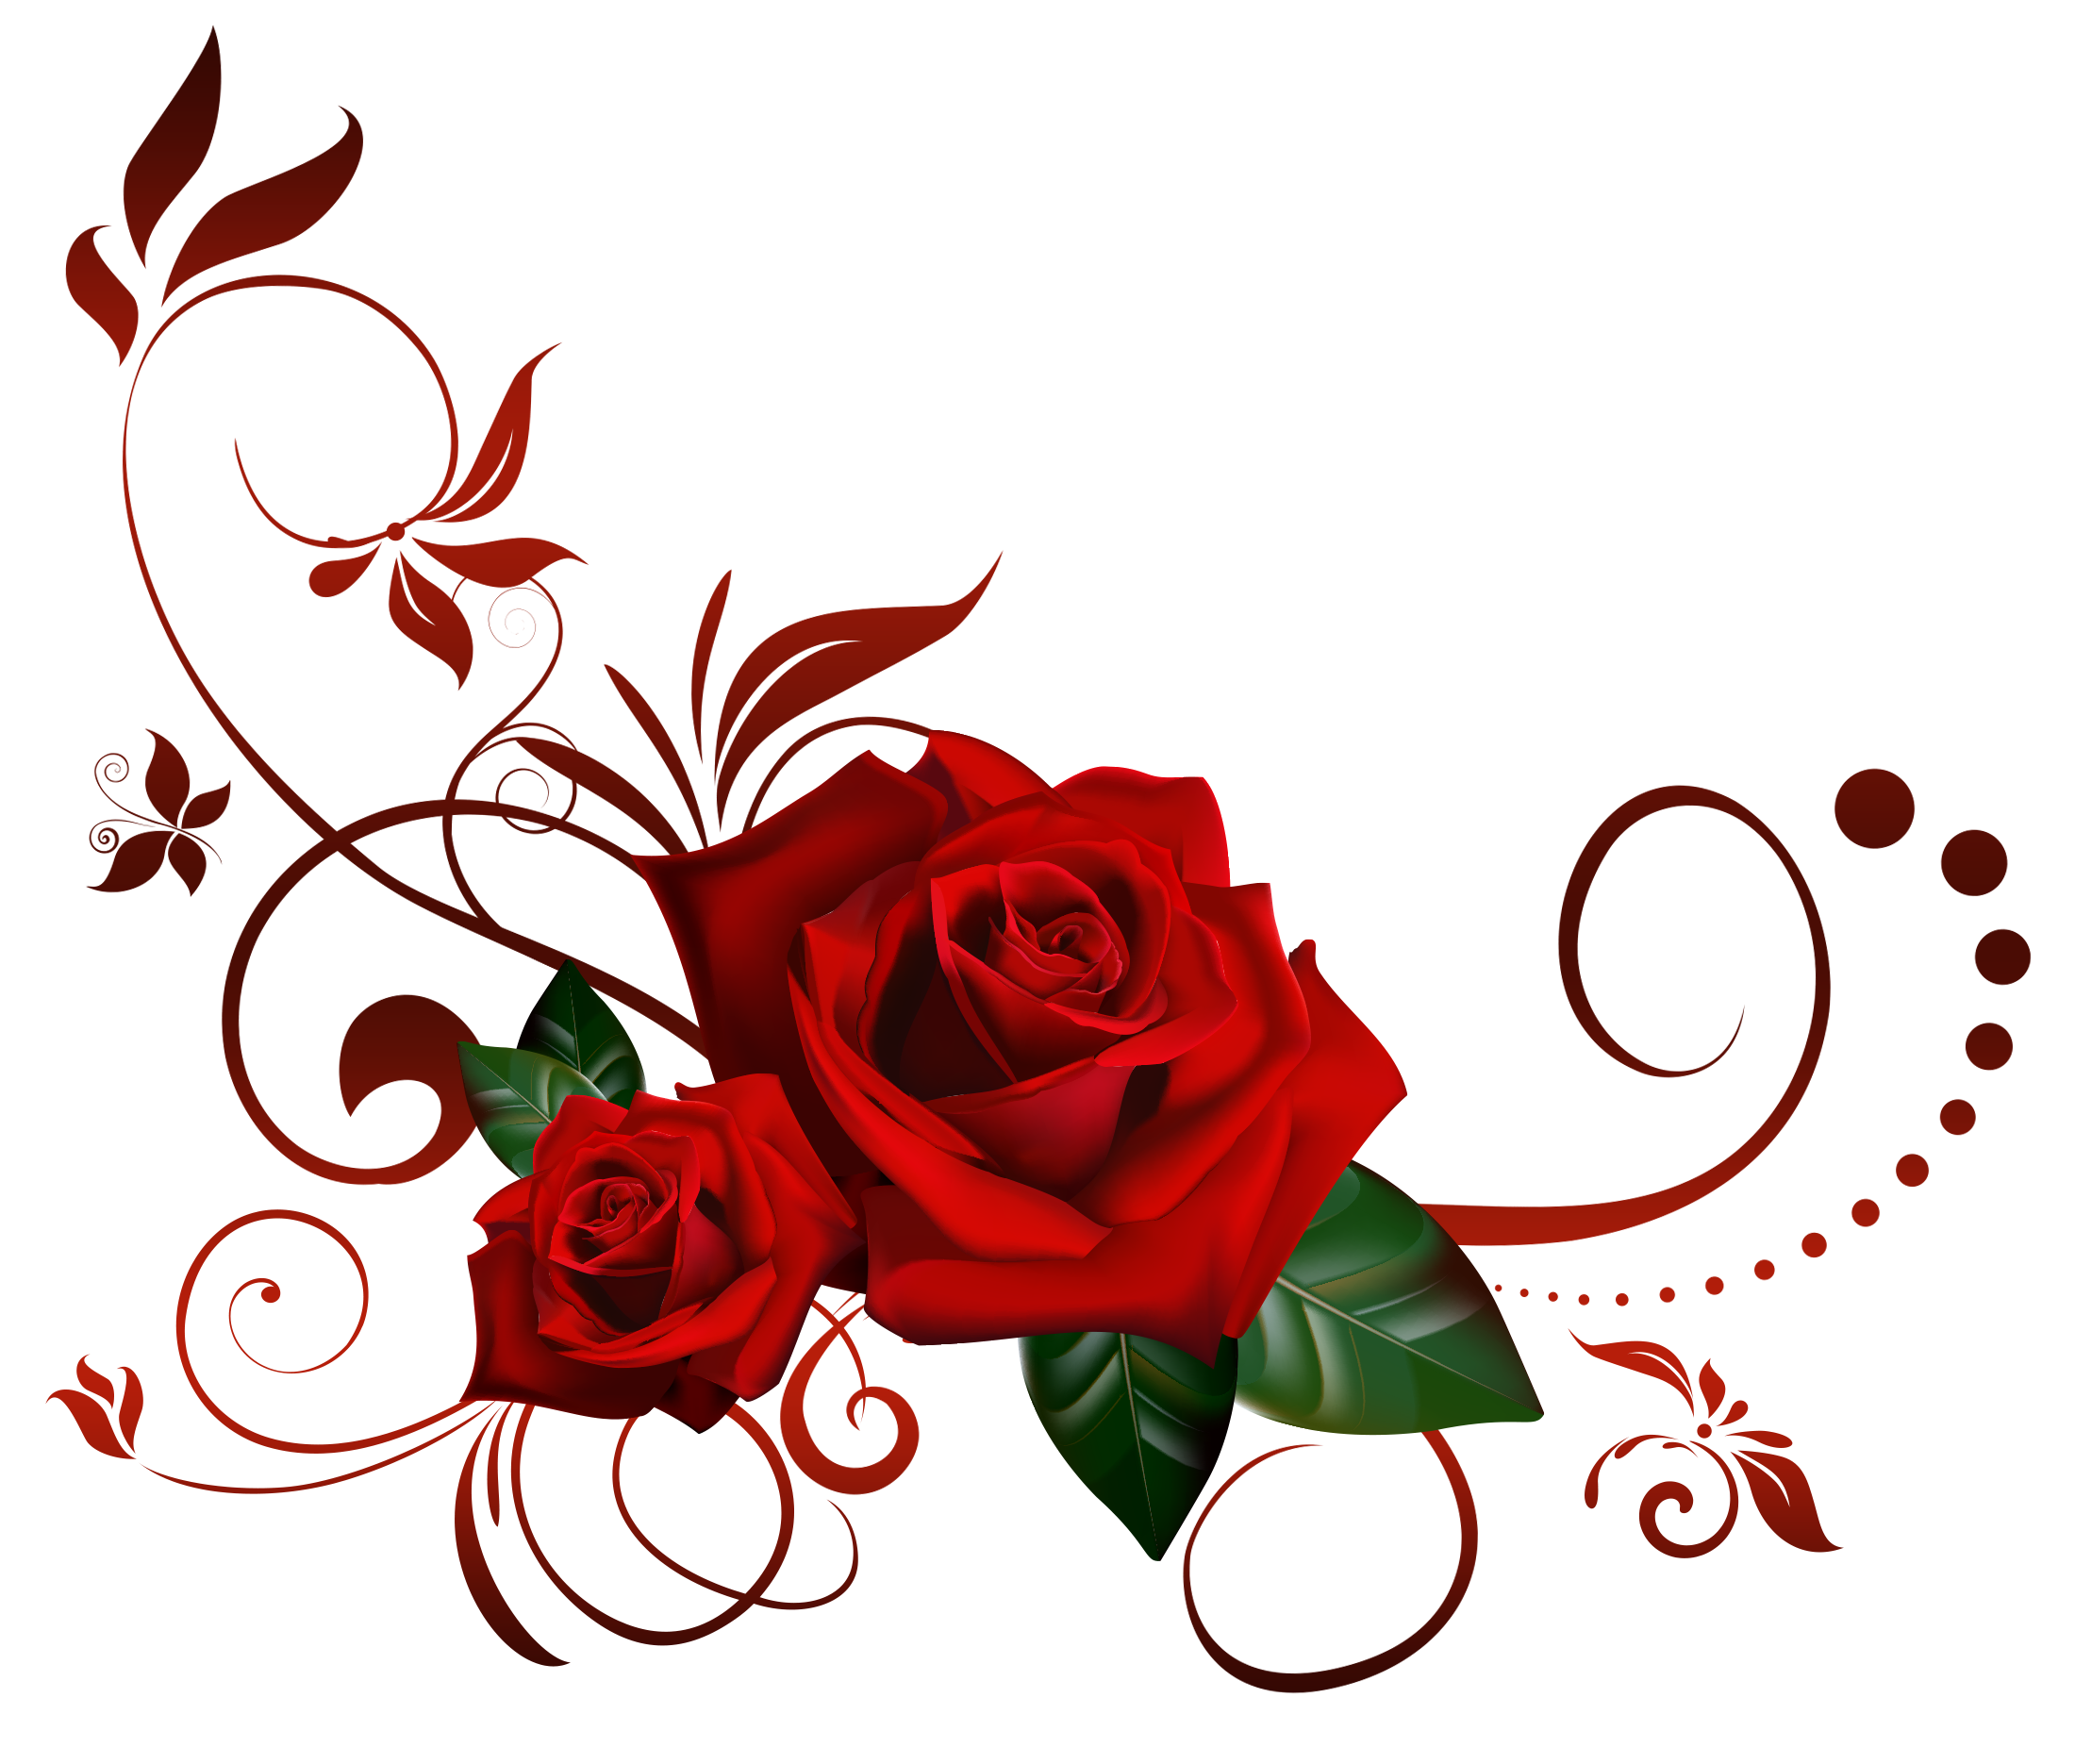 REd Rose PNG Flowers images and Clipart transparent background